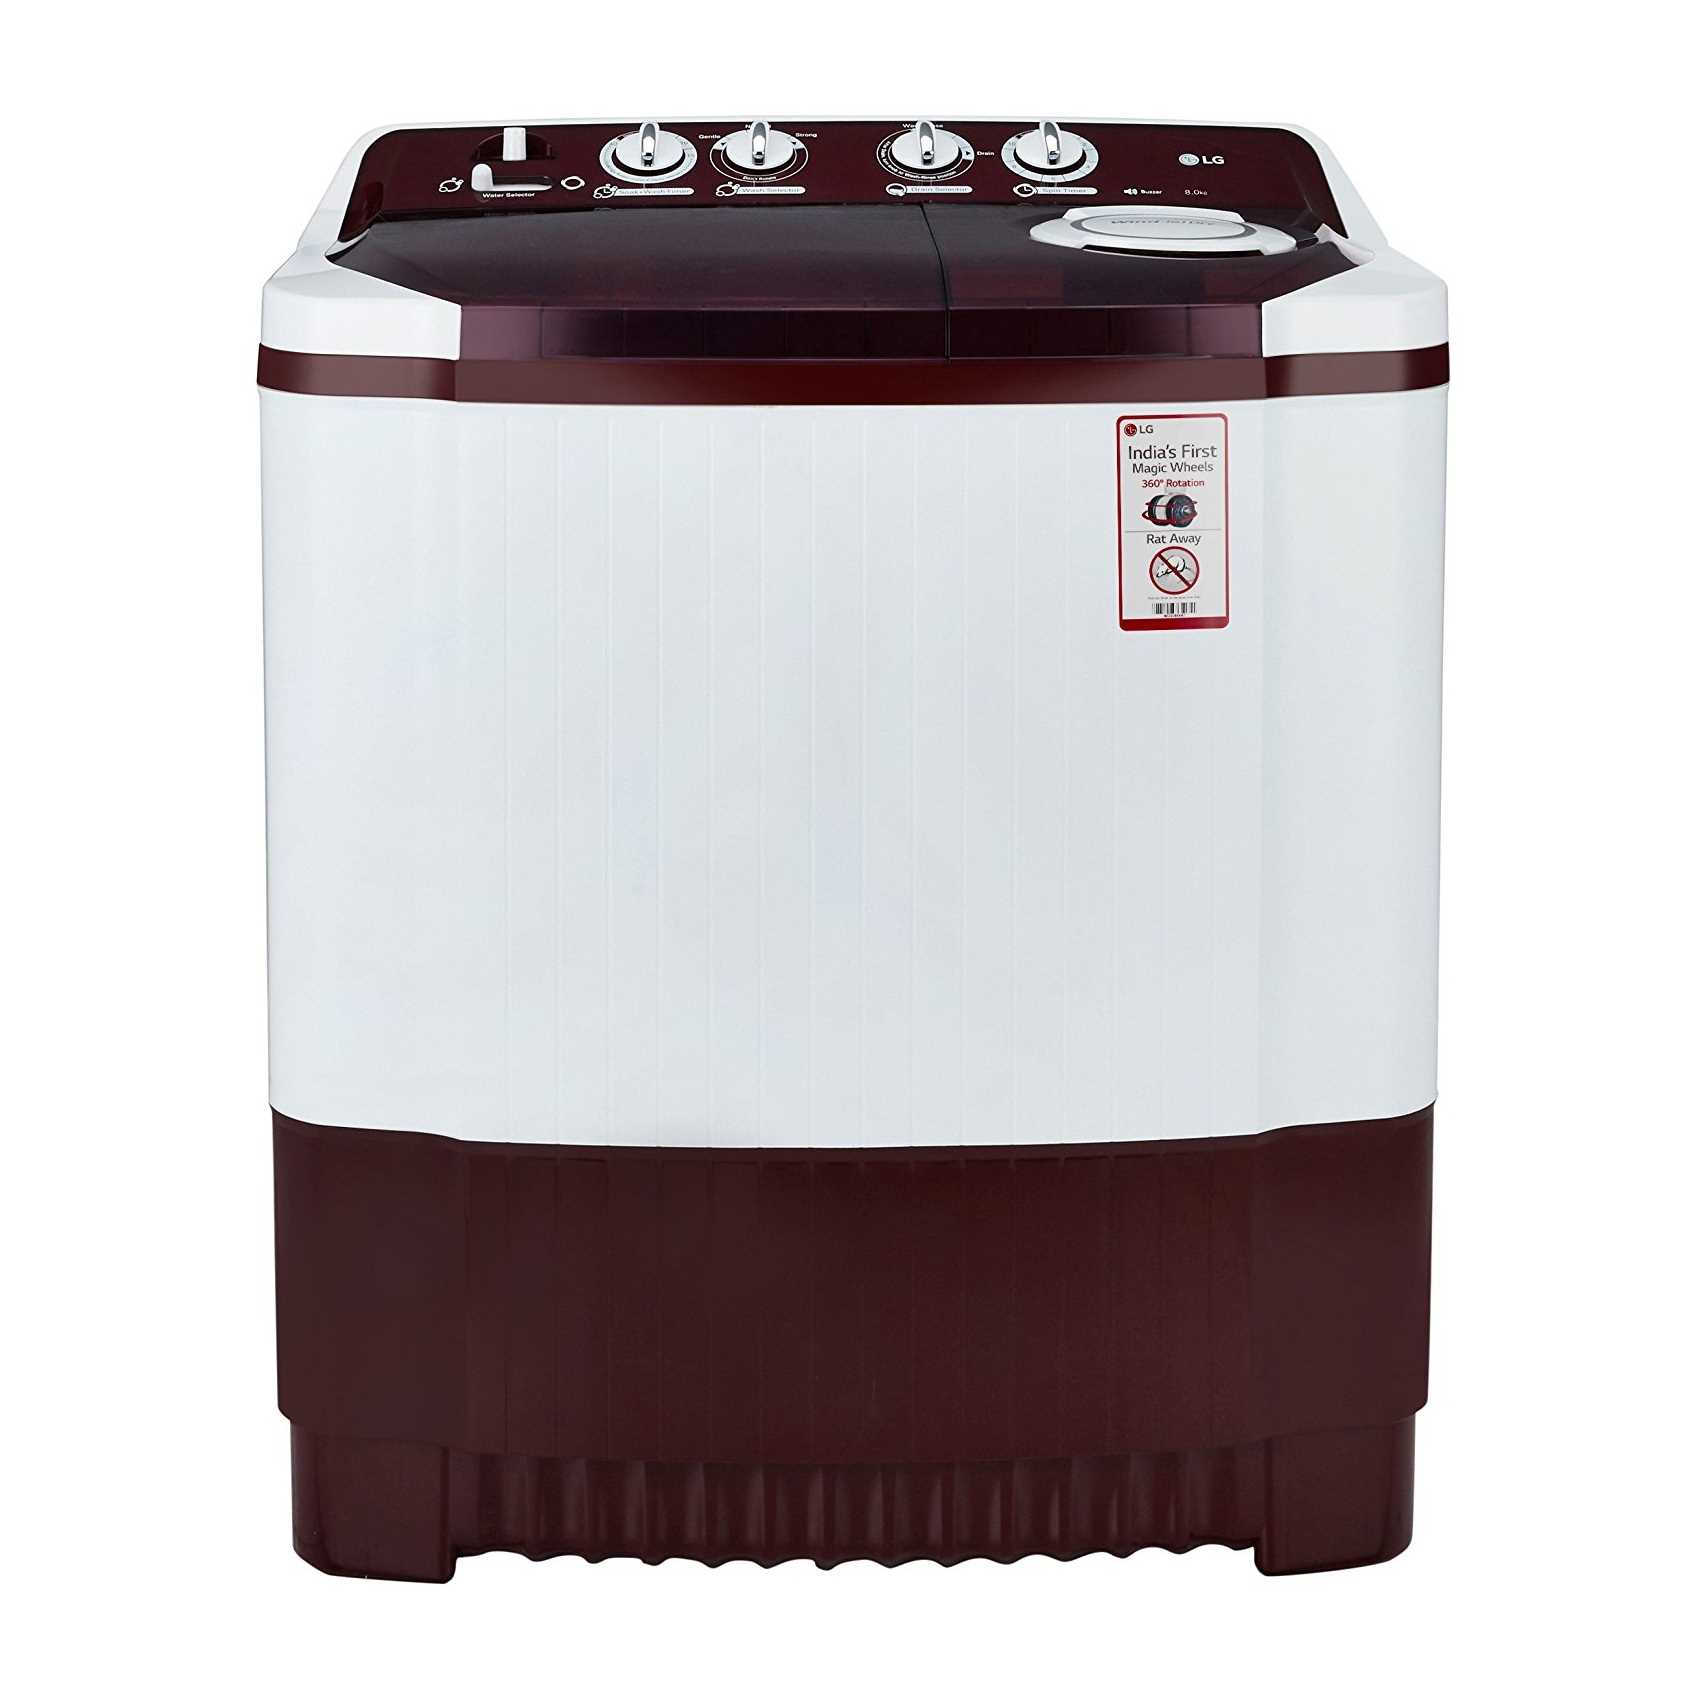 LG P9042R3SM 8 Kg Semi Automatic Top Loading Washing Machine